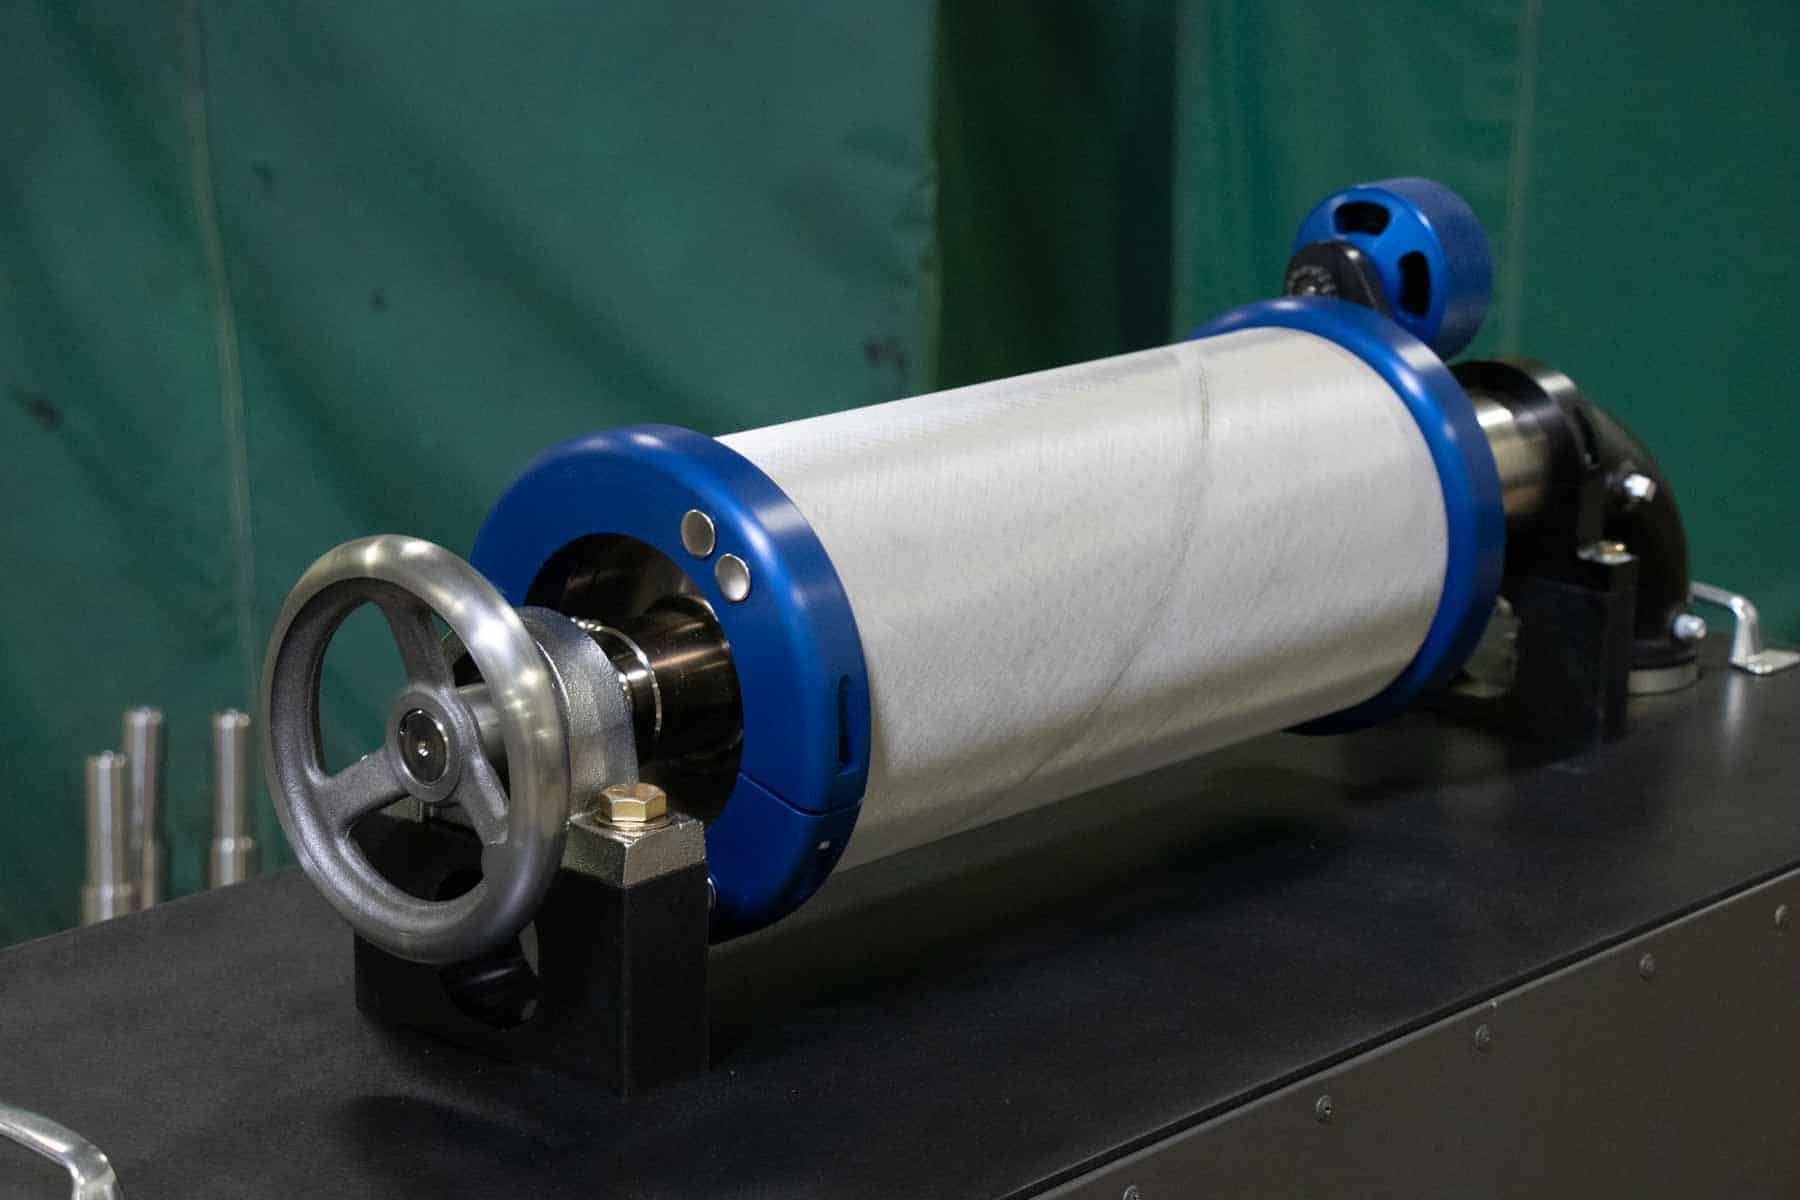 MECA produces high-quality process rolls for packaging